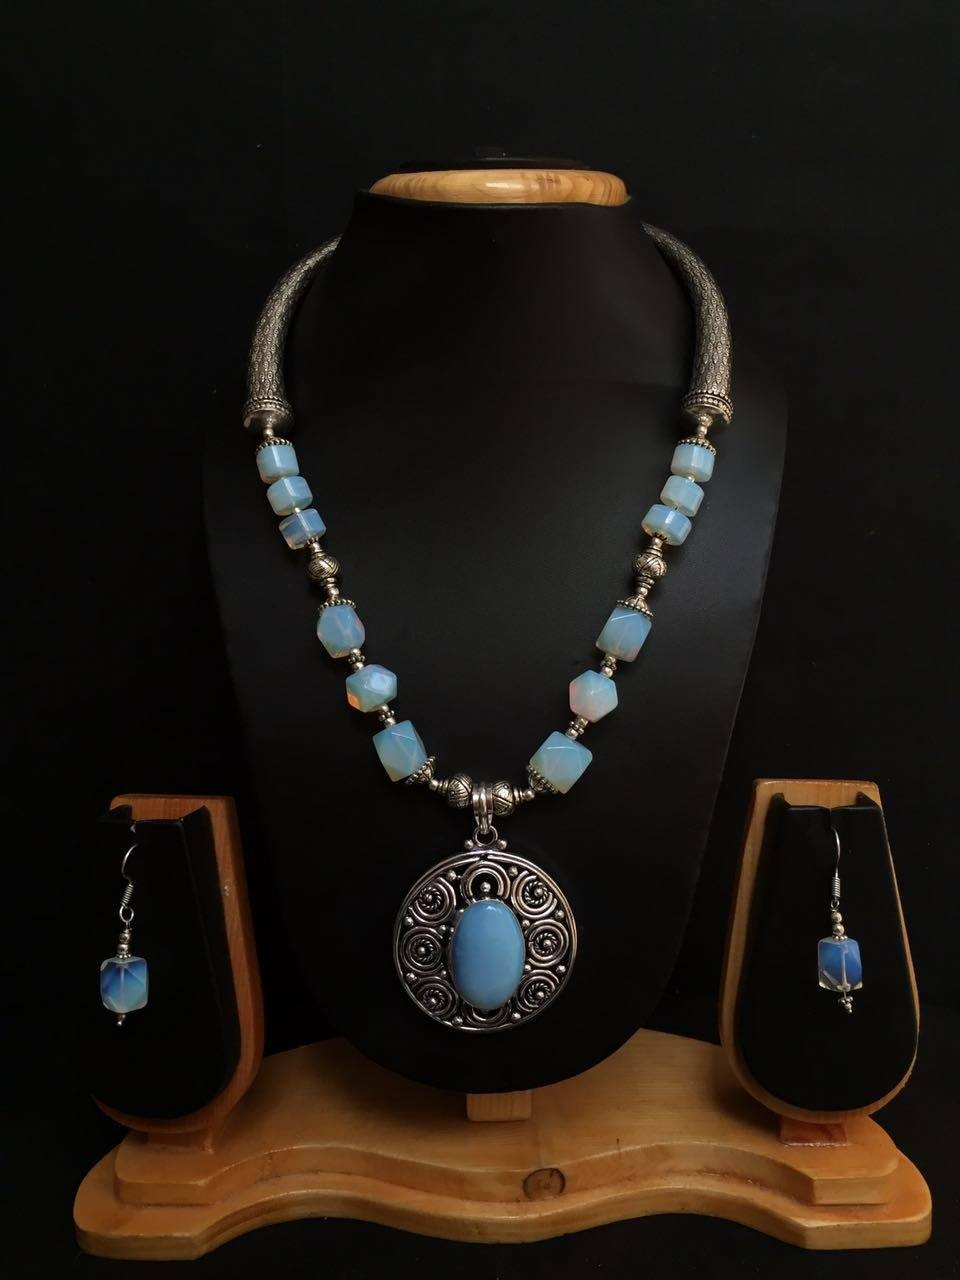 Handmade German Silver Coral Turquoise Necklace With Dangler Earrings